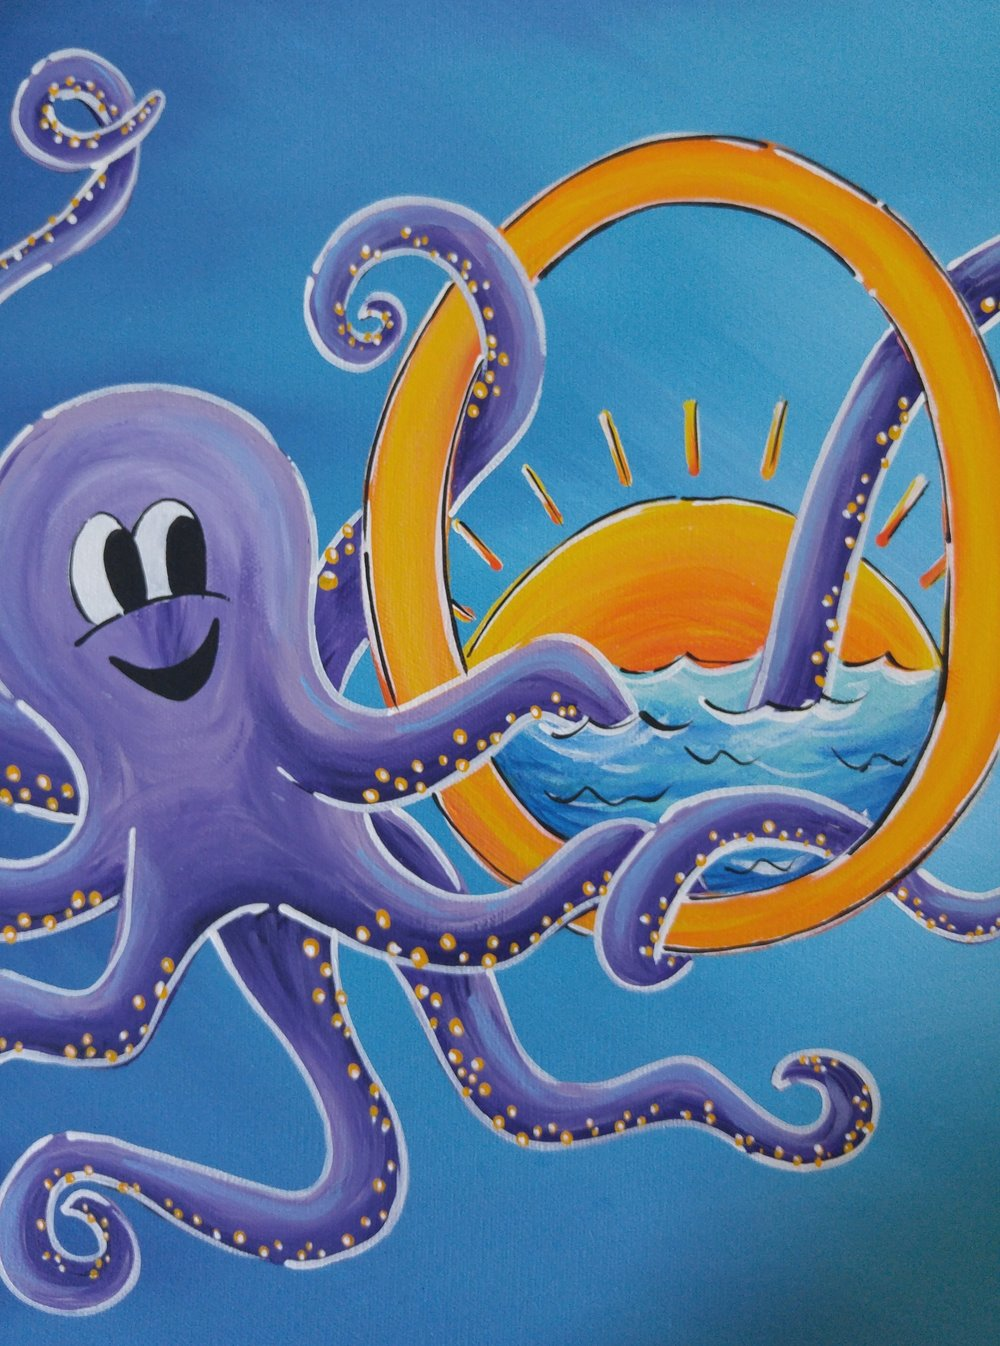 O is for Octopus! (And ocean!)